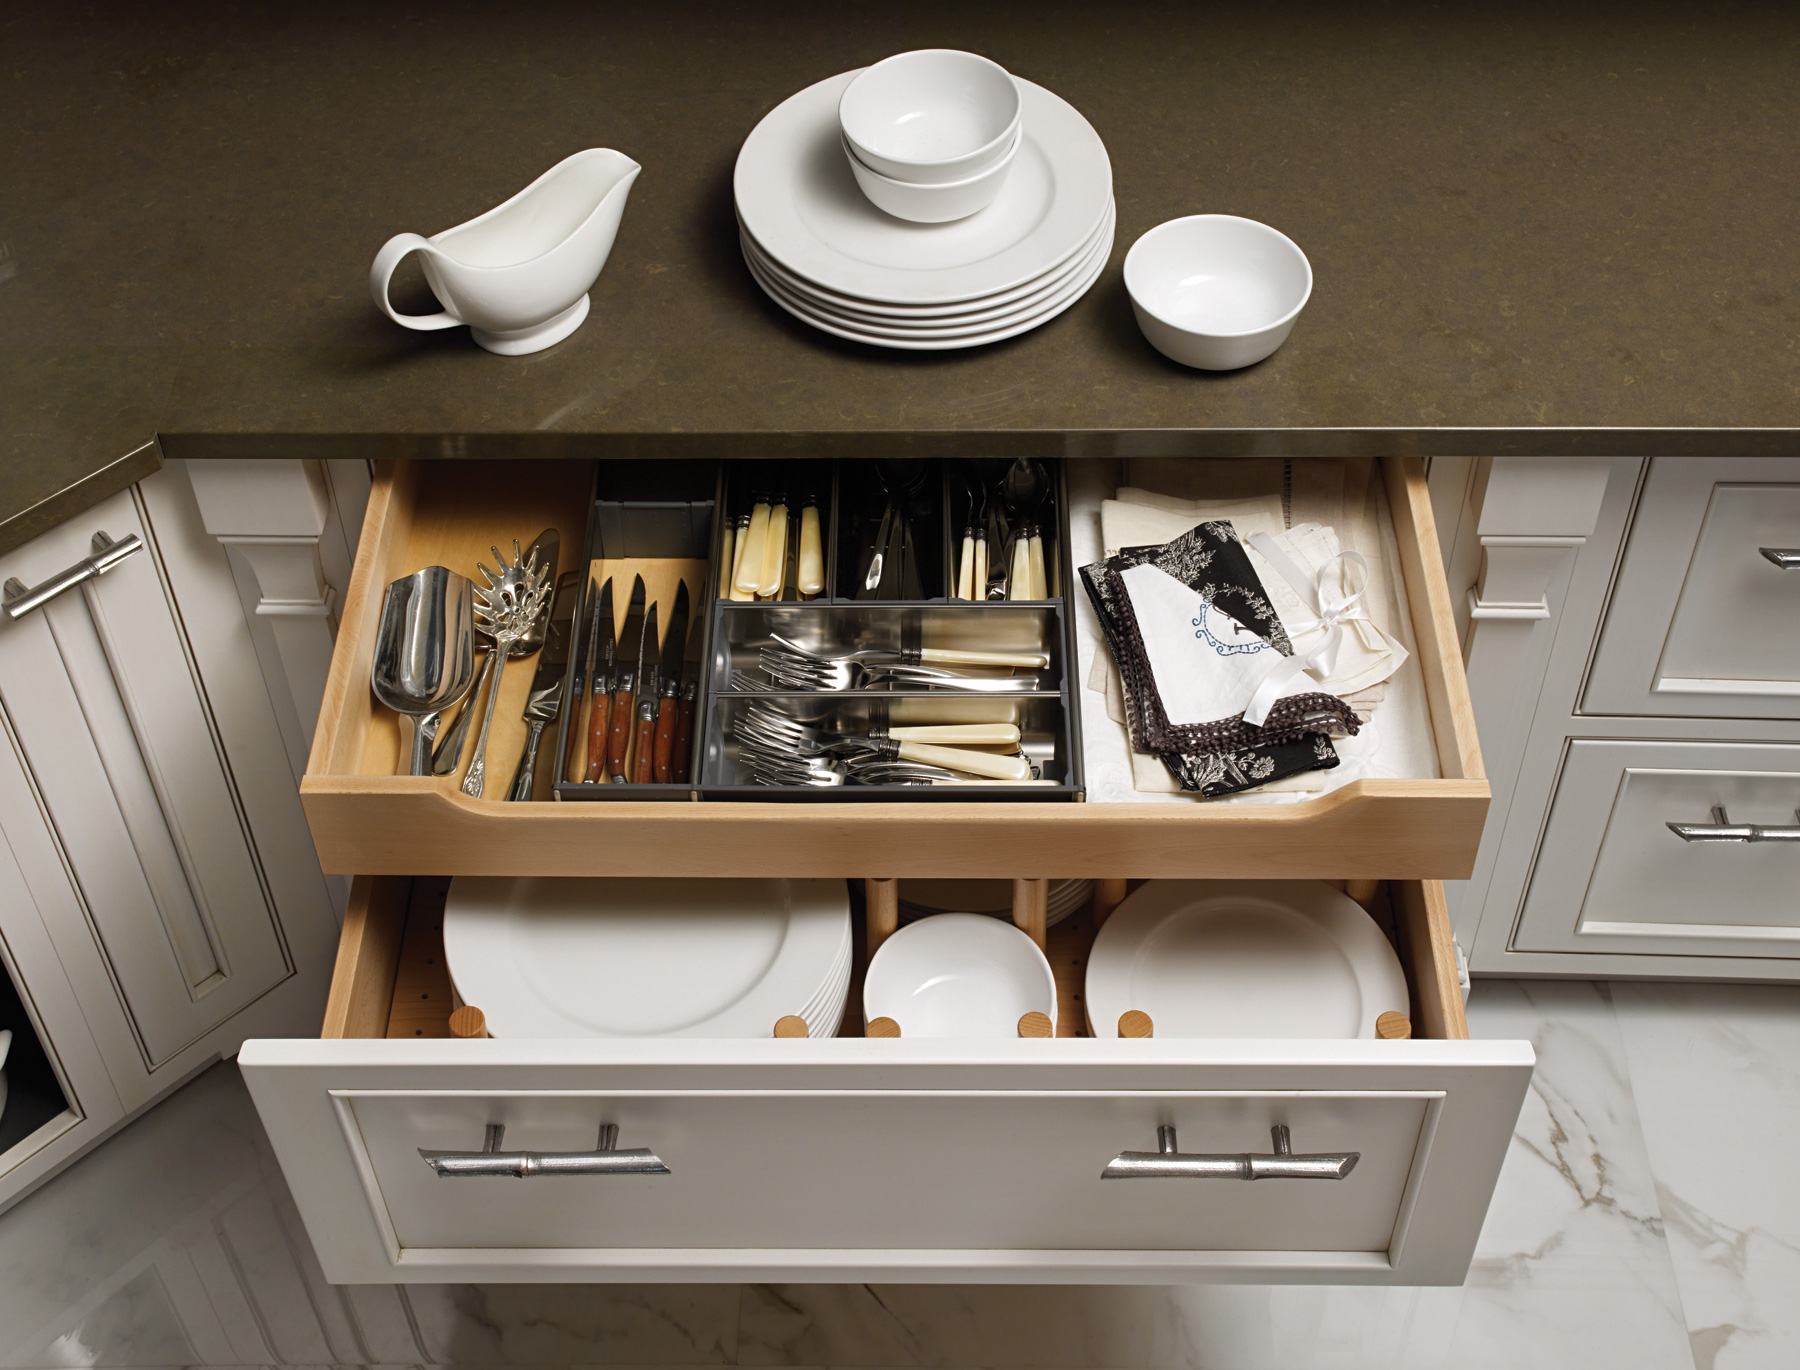 Permalink to Kitchen Cabinet Plate Drawer